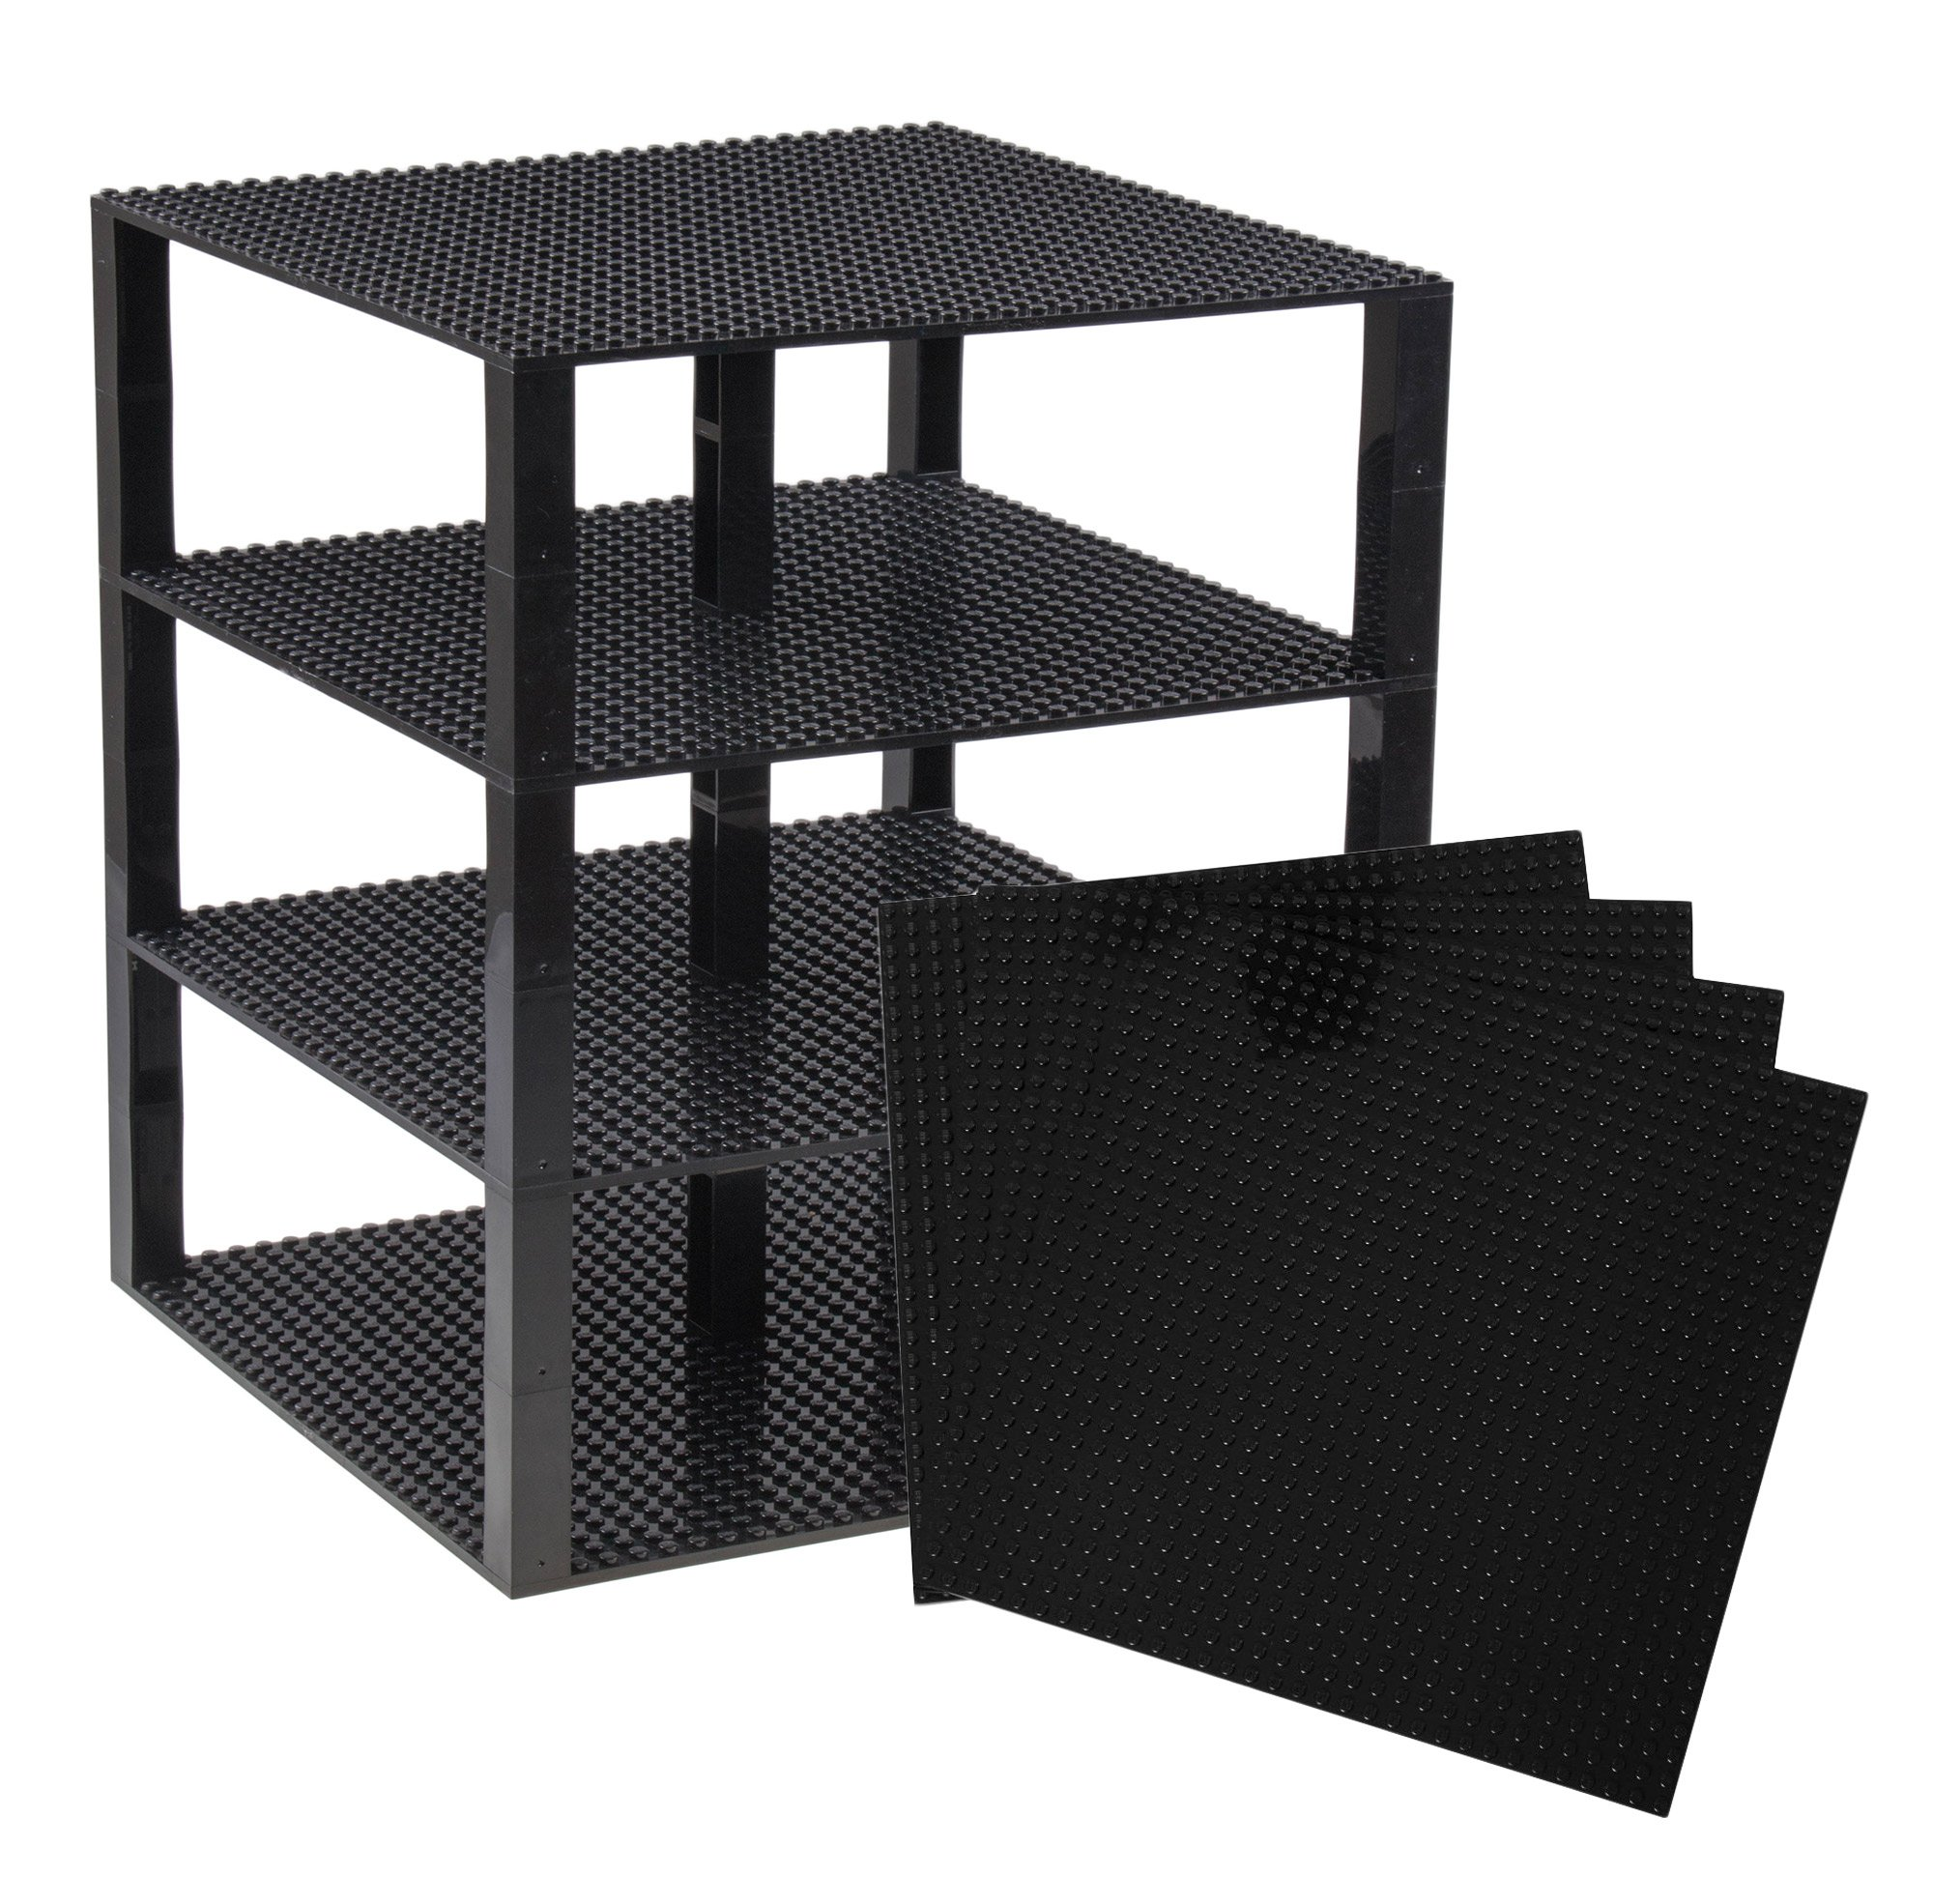 """Strictly Briks Classic Baseplates 10"""" x 10"""" Brik Tower 100% Compatible with All Major Brands   Building Bricks for Towers and More   4 Black Stackable Base Plates & 30 Stackers"""